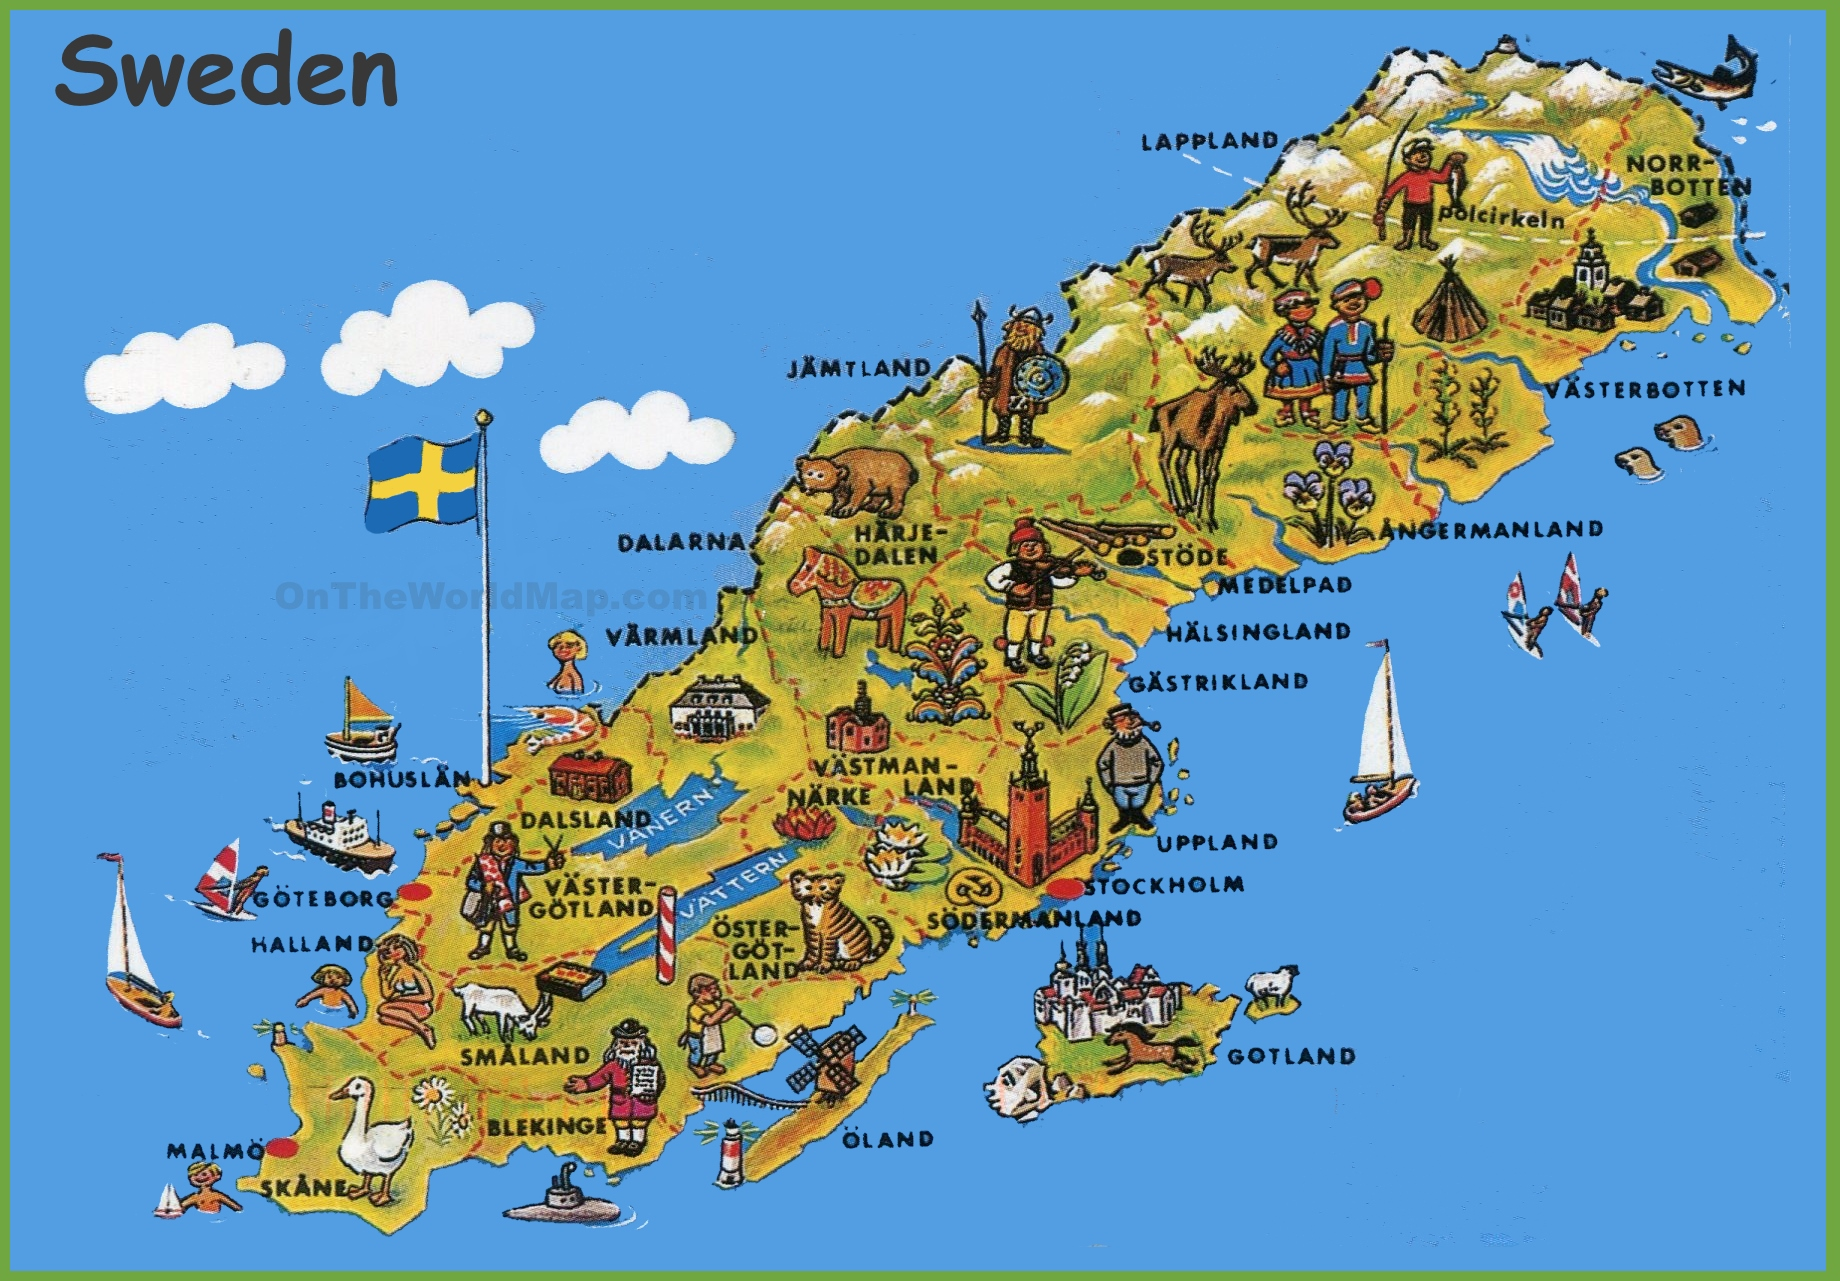 Maps Update Tourist Attractions Map In Sweden Sweden - Sweden maine map